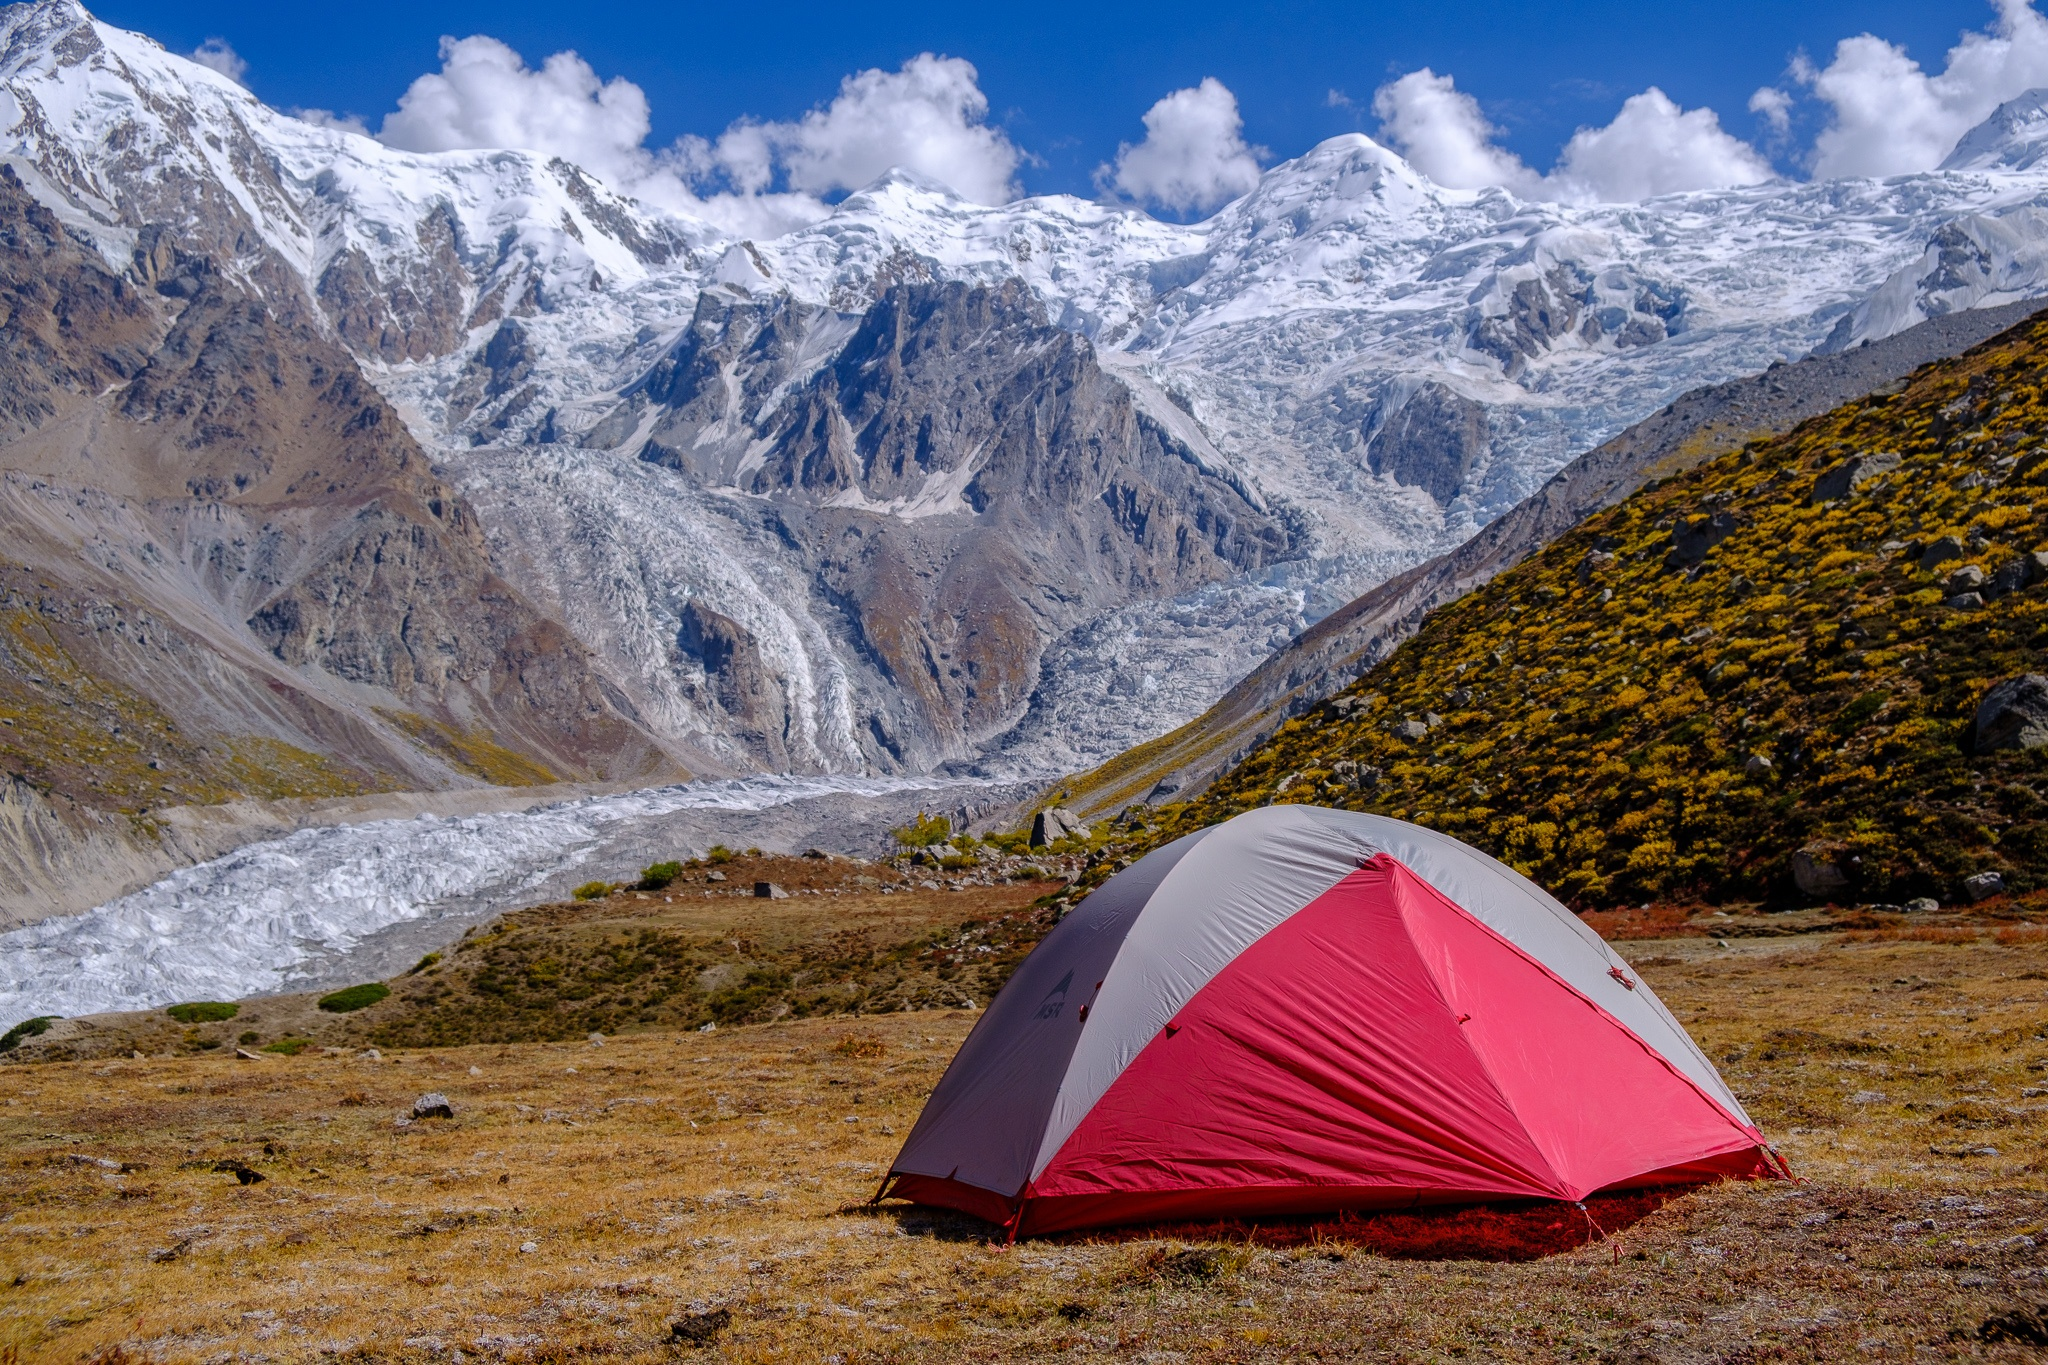 msr backpacking tents